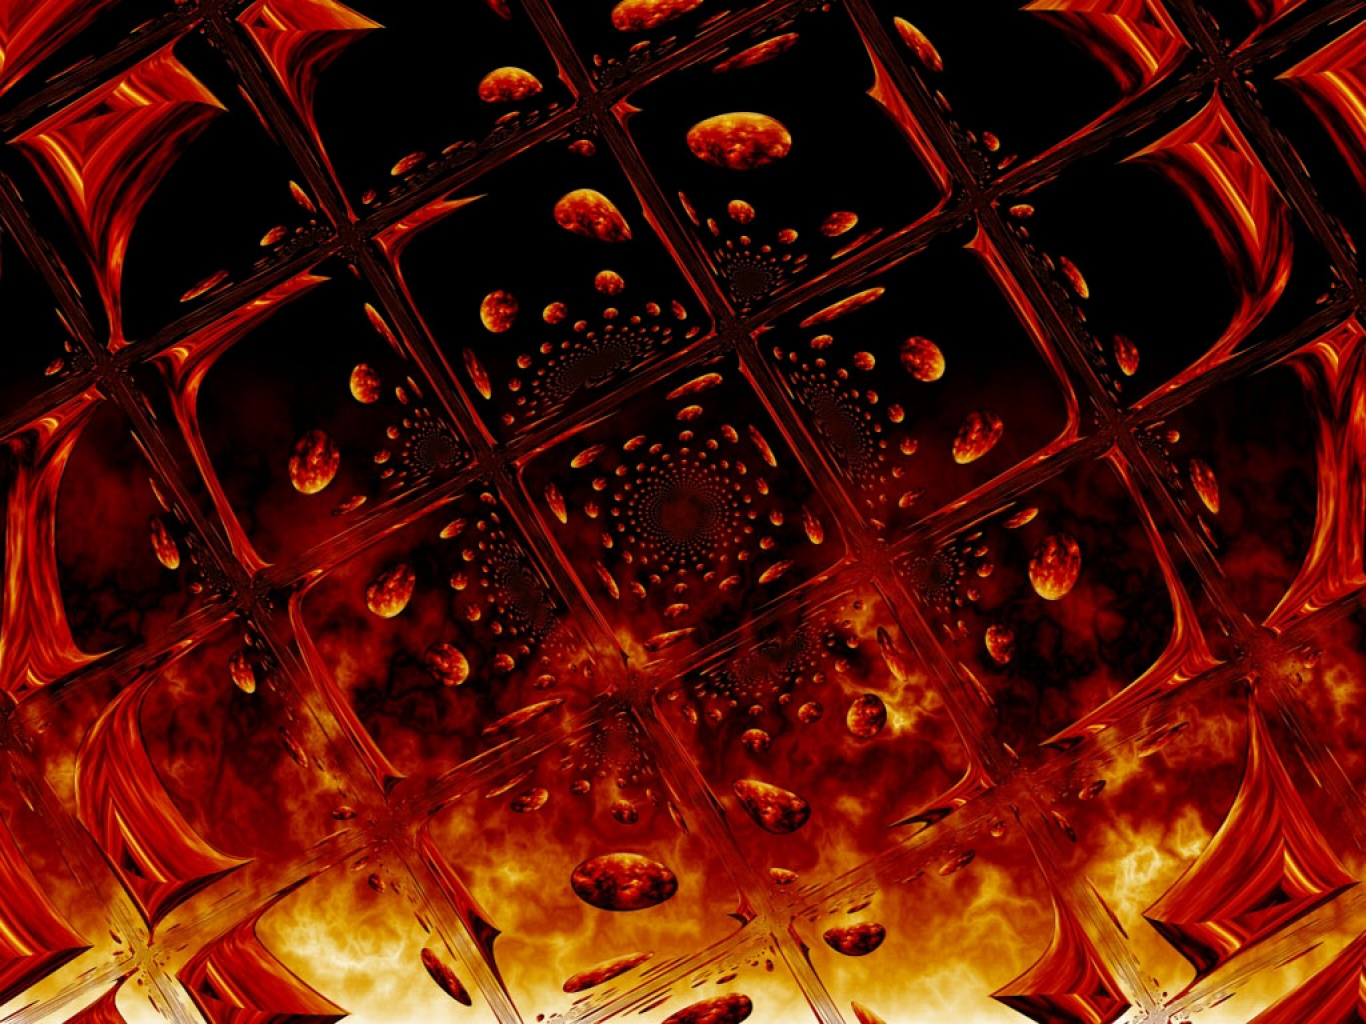 Avatar Wallpaper Hd 3d Fire Glass Wallpaper And Background Image 1366x1024 Id